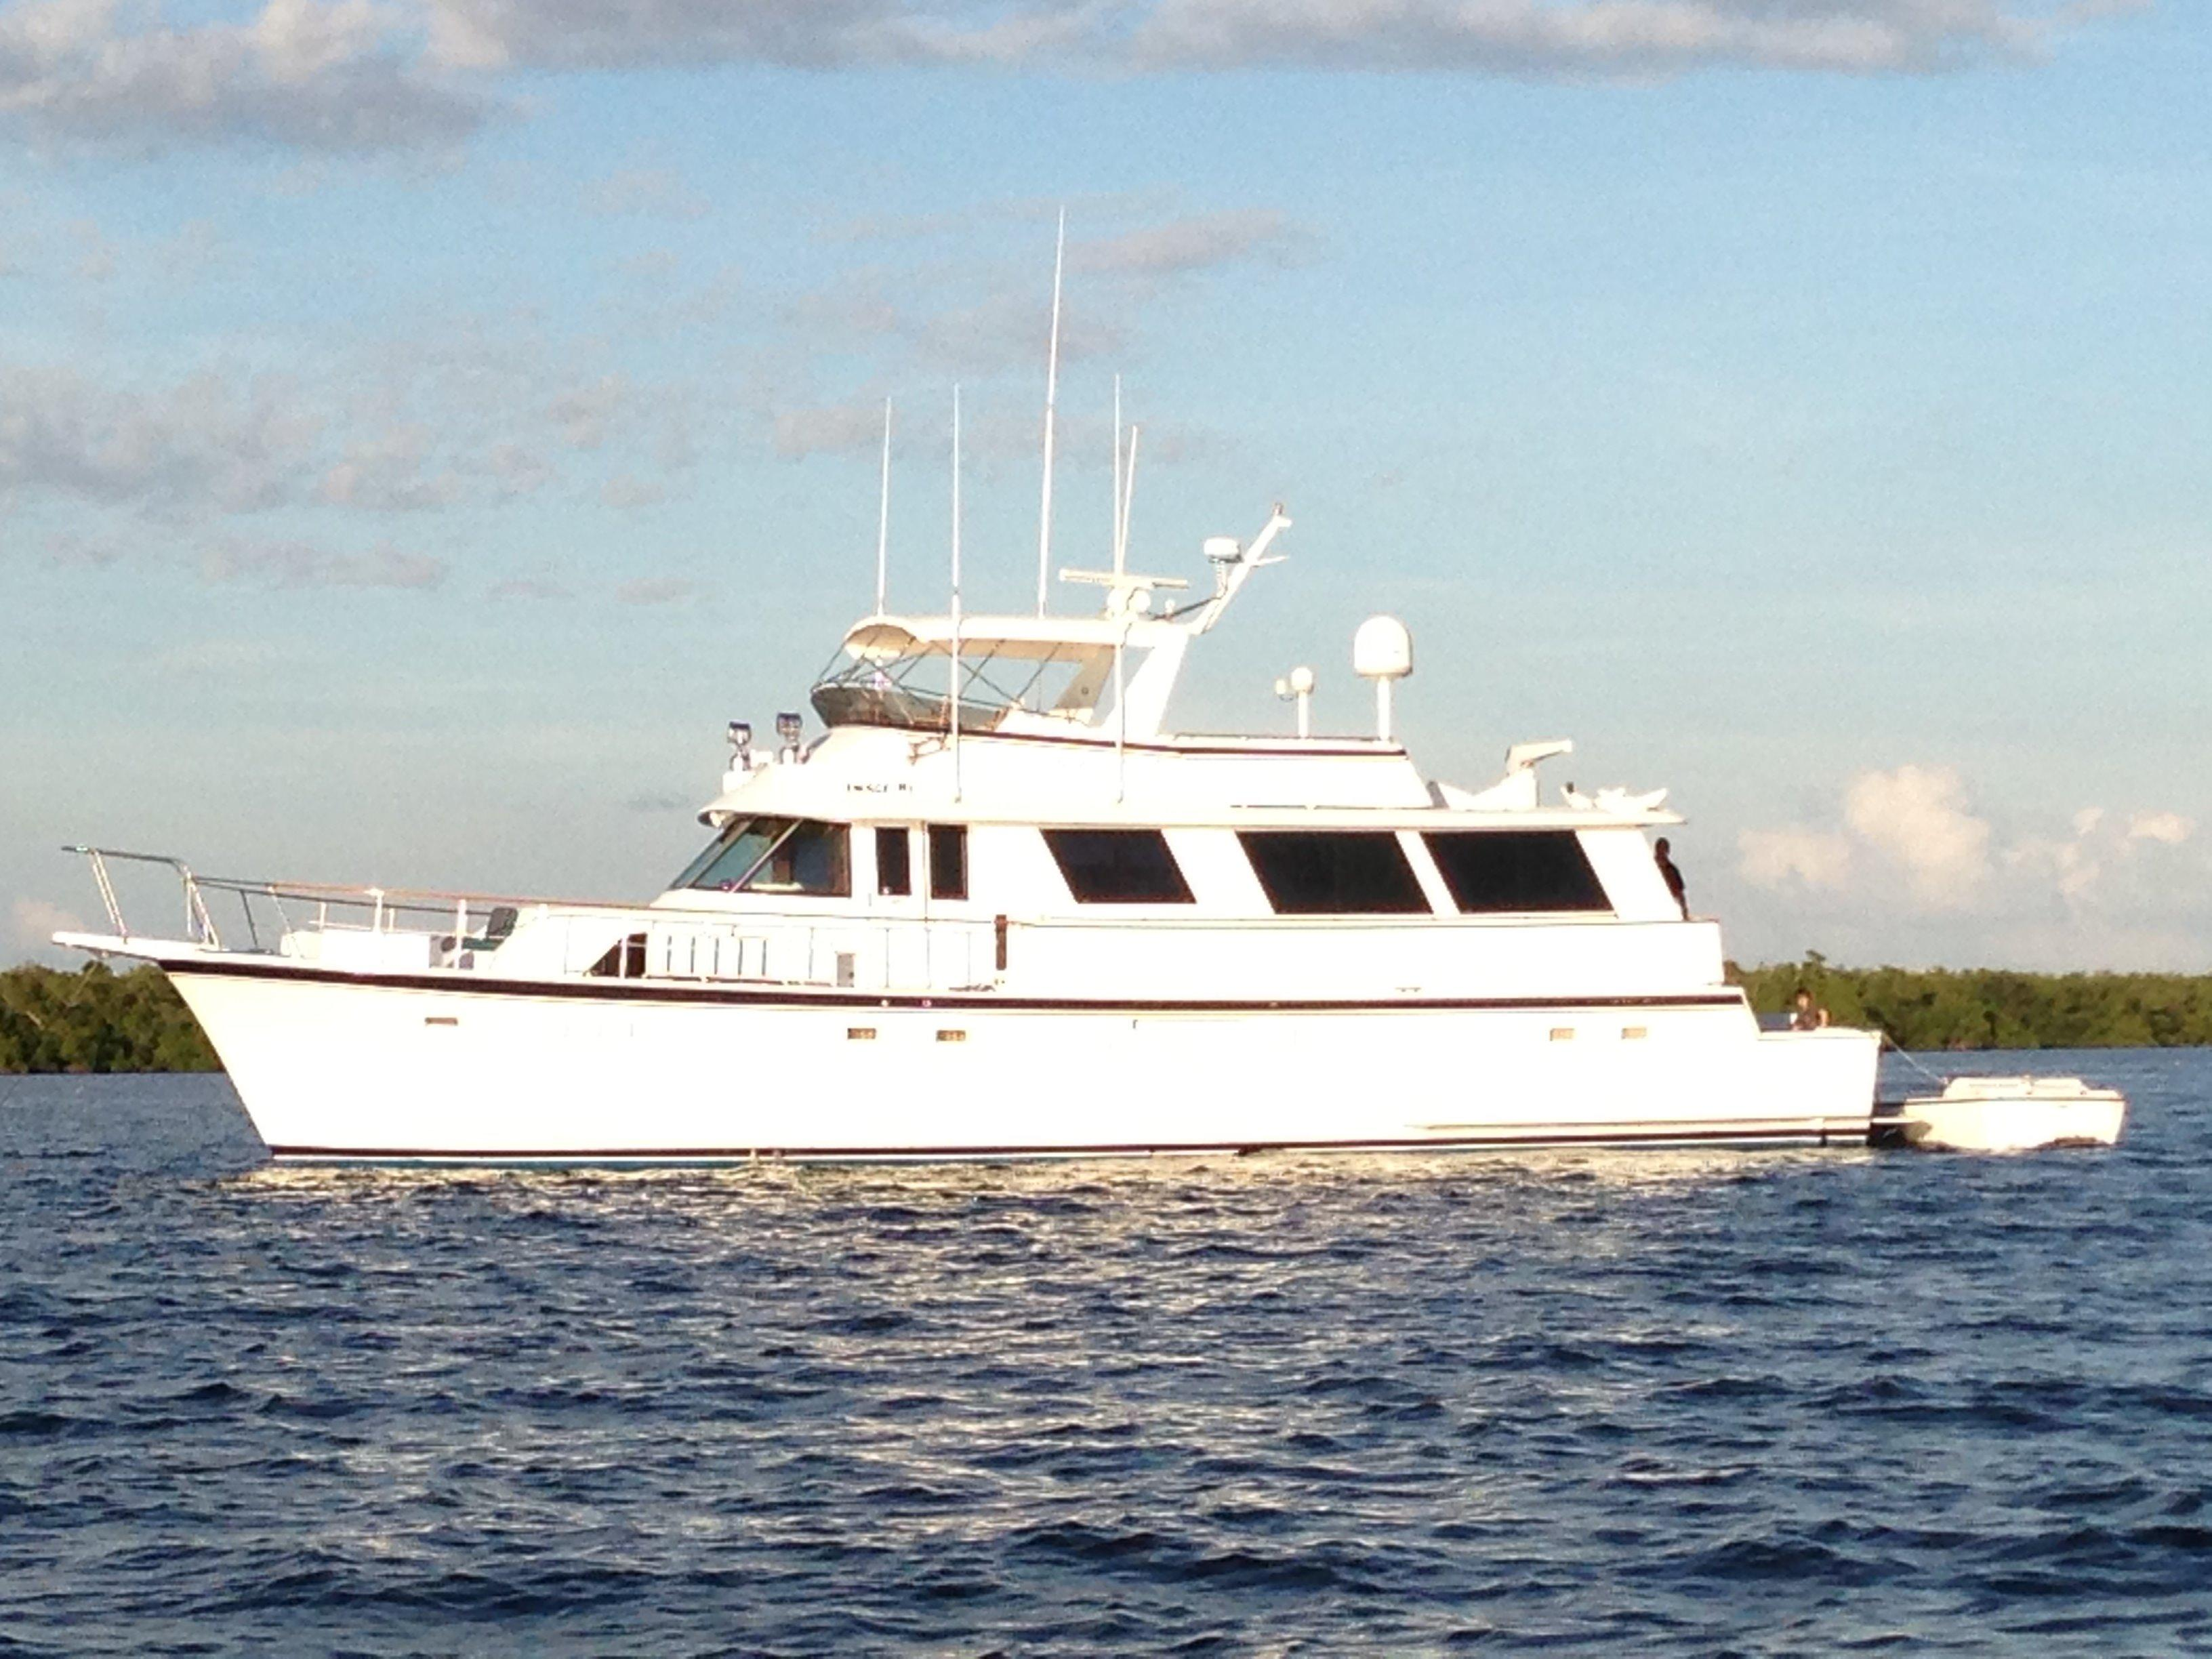 67 hatteras 1981 for sale in cape coral florida us for Hatteras motor yacht for sale